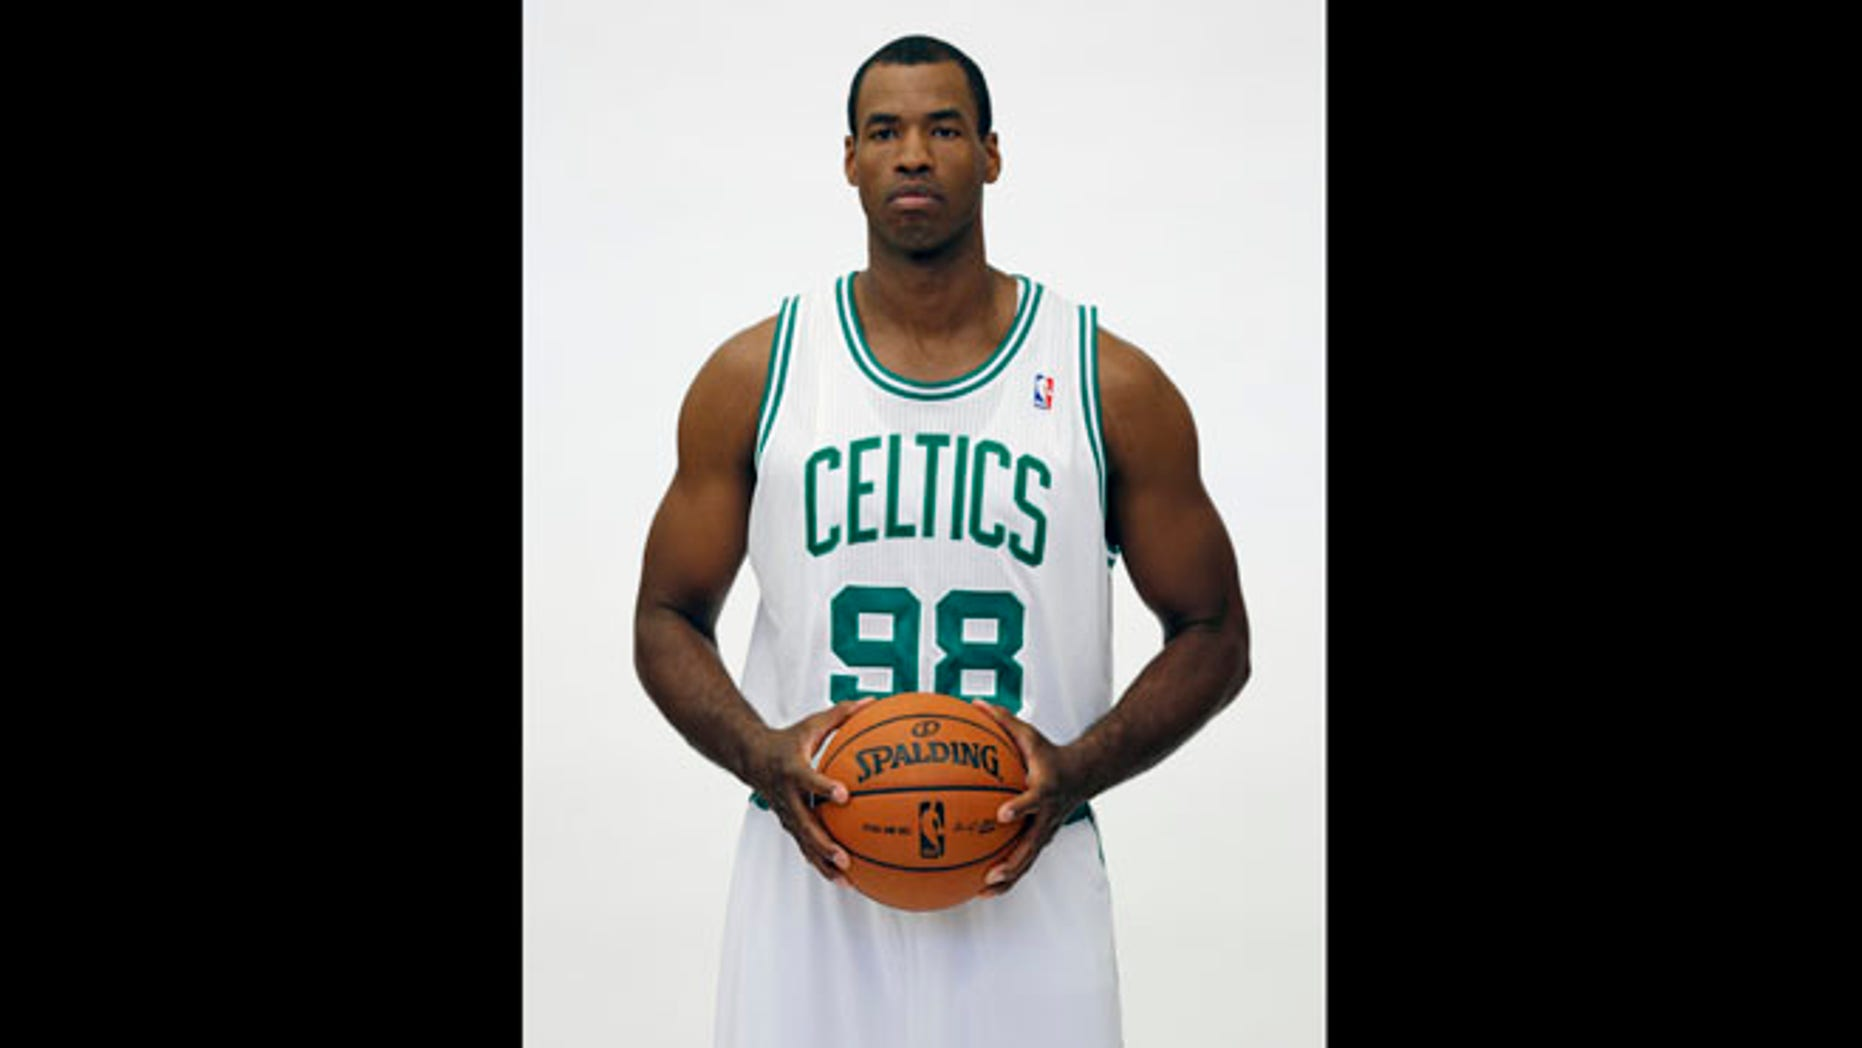 In a Sept. 28, 2012 file photo, former Boston Celtics player Jason Collins poses during Celtics NBA basketball media day. NBA veteran center Collins has become the first male professional athlete in the major four American sports leagues to come out as gay. Collins wrote a first-person account posted April 29, 2013 on Sports Illustrated's website. He finished this past season with the Washington Wizards and is now a free agent.